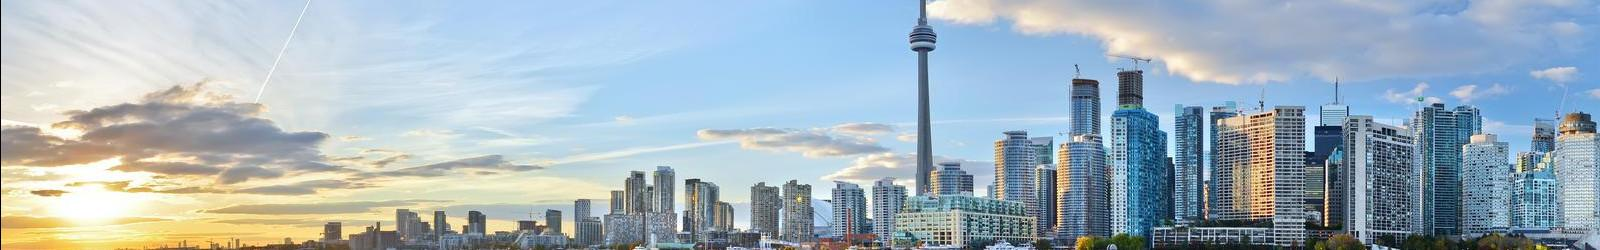 Therapists in Toronto, Ontario: psychologists, counselors, and mental health specialists